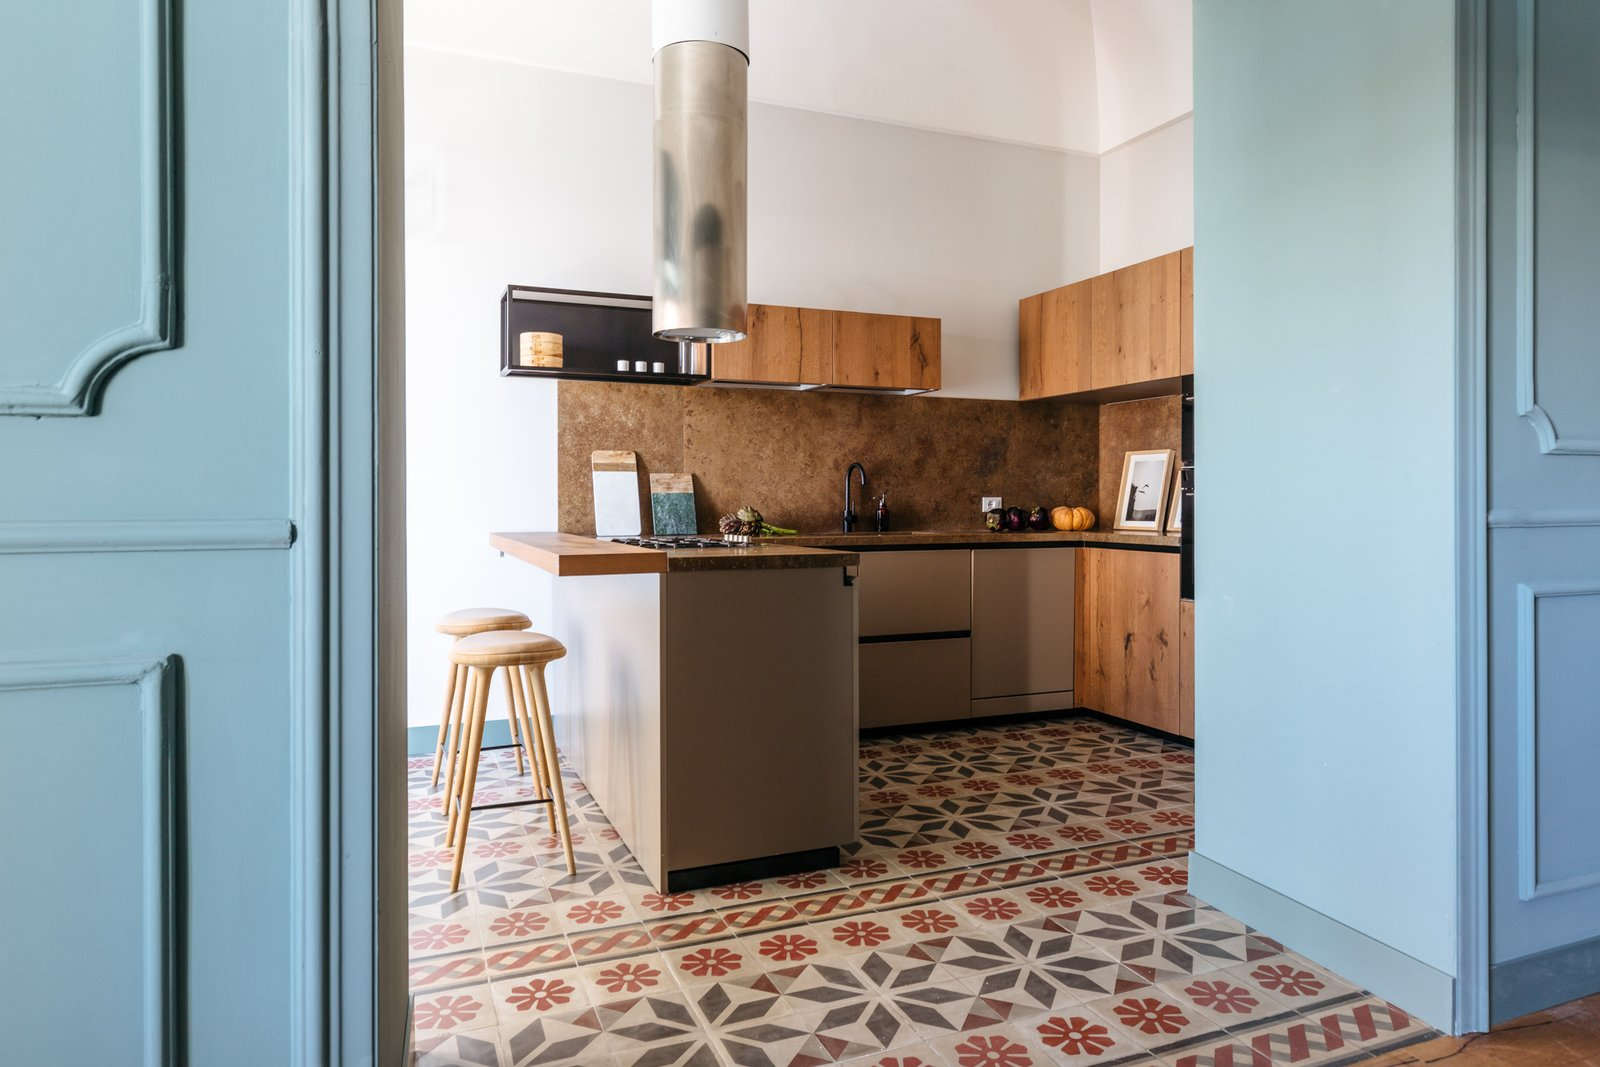 Kitchen, Cooktops, Cement Tile, Marble, Wood, Wood, Accent, Marble, Range Hood, Ceramic Tile, and Undermount Wooden and marble cutting boards by Kaat Collection.  Best Kitchen Undermount Accent Cooktops Photos from A Renovated Apartment in an 18th-Century Sicilian Building Pays Homage to the Sea